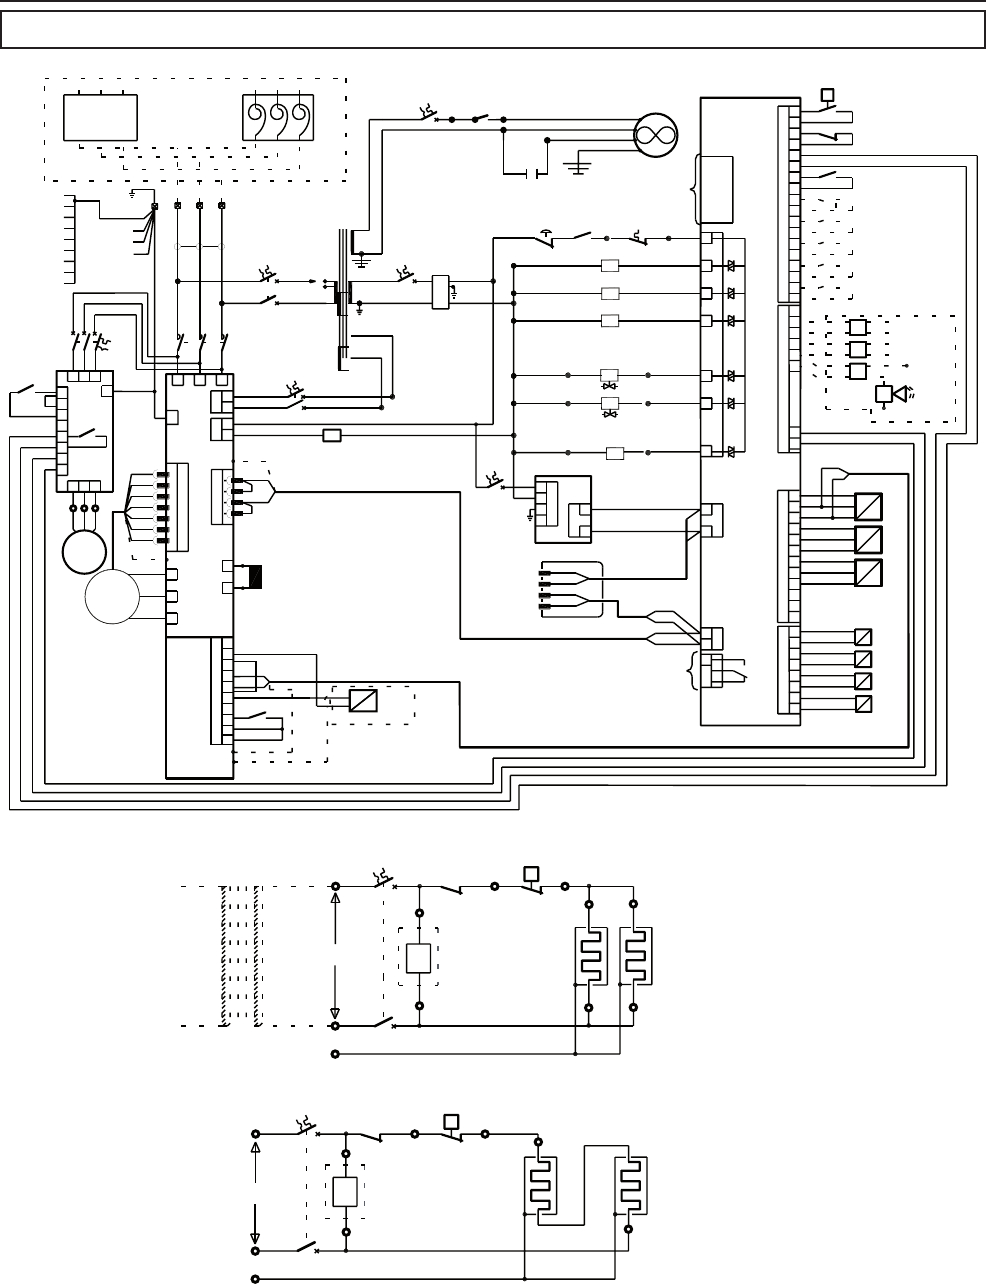 M 11 Ecm Wiring Diagram - Wiring Schematics